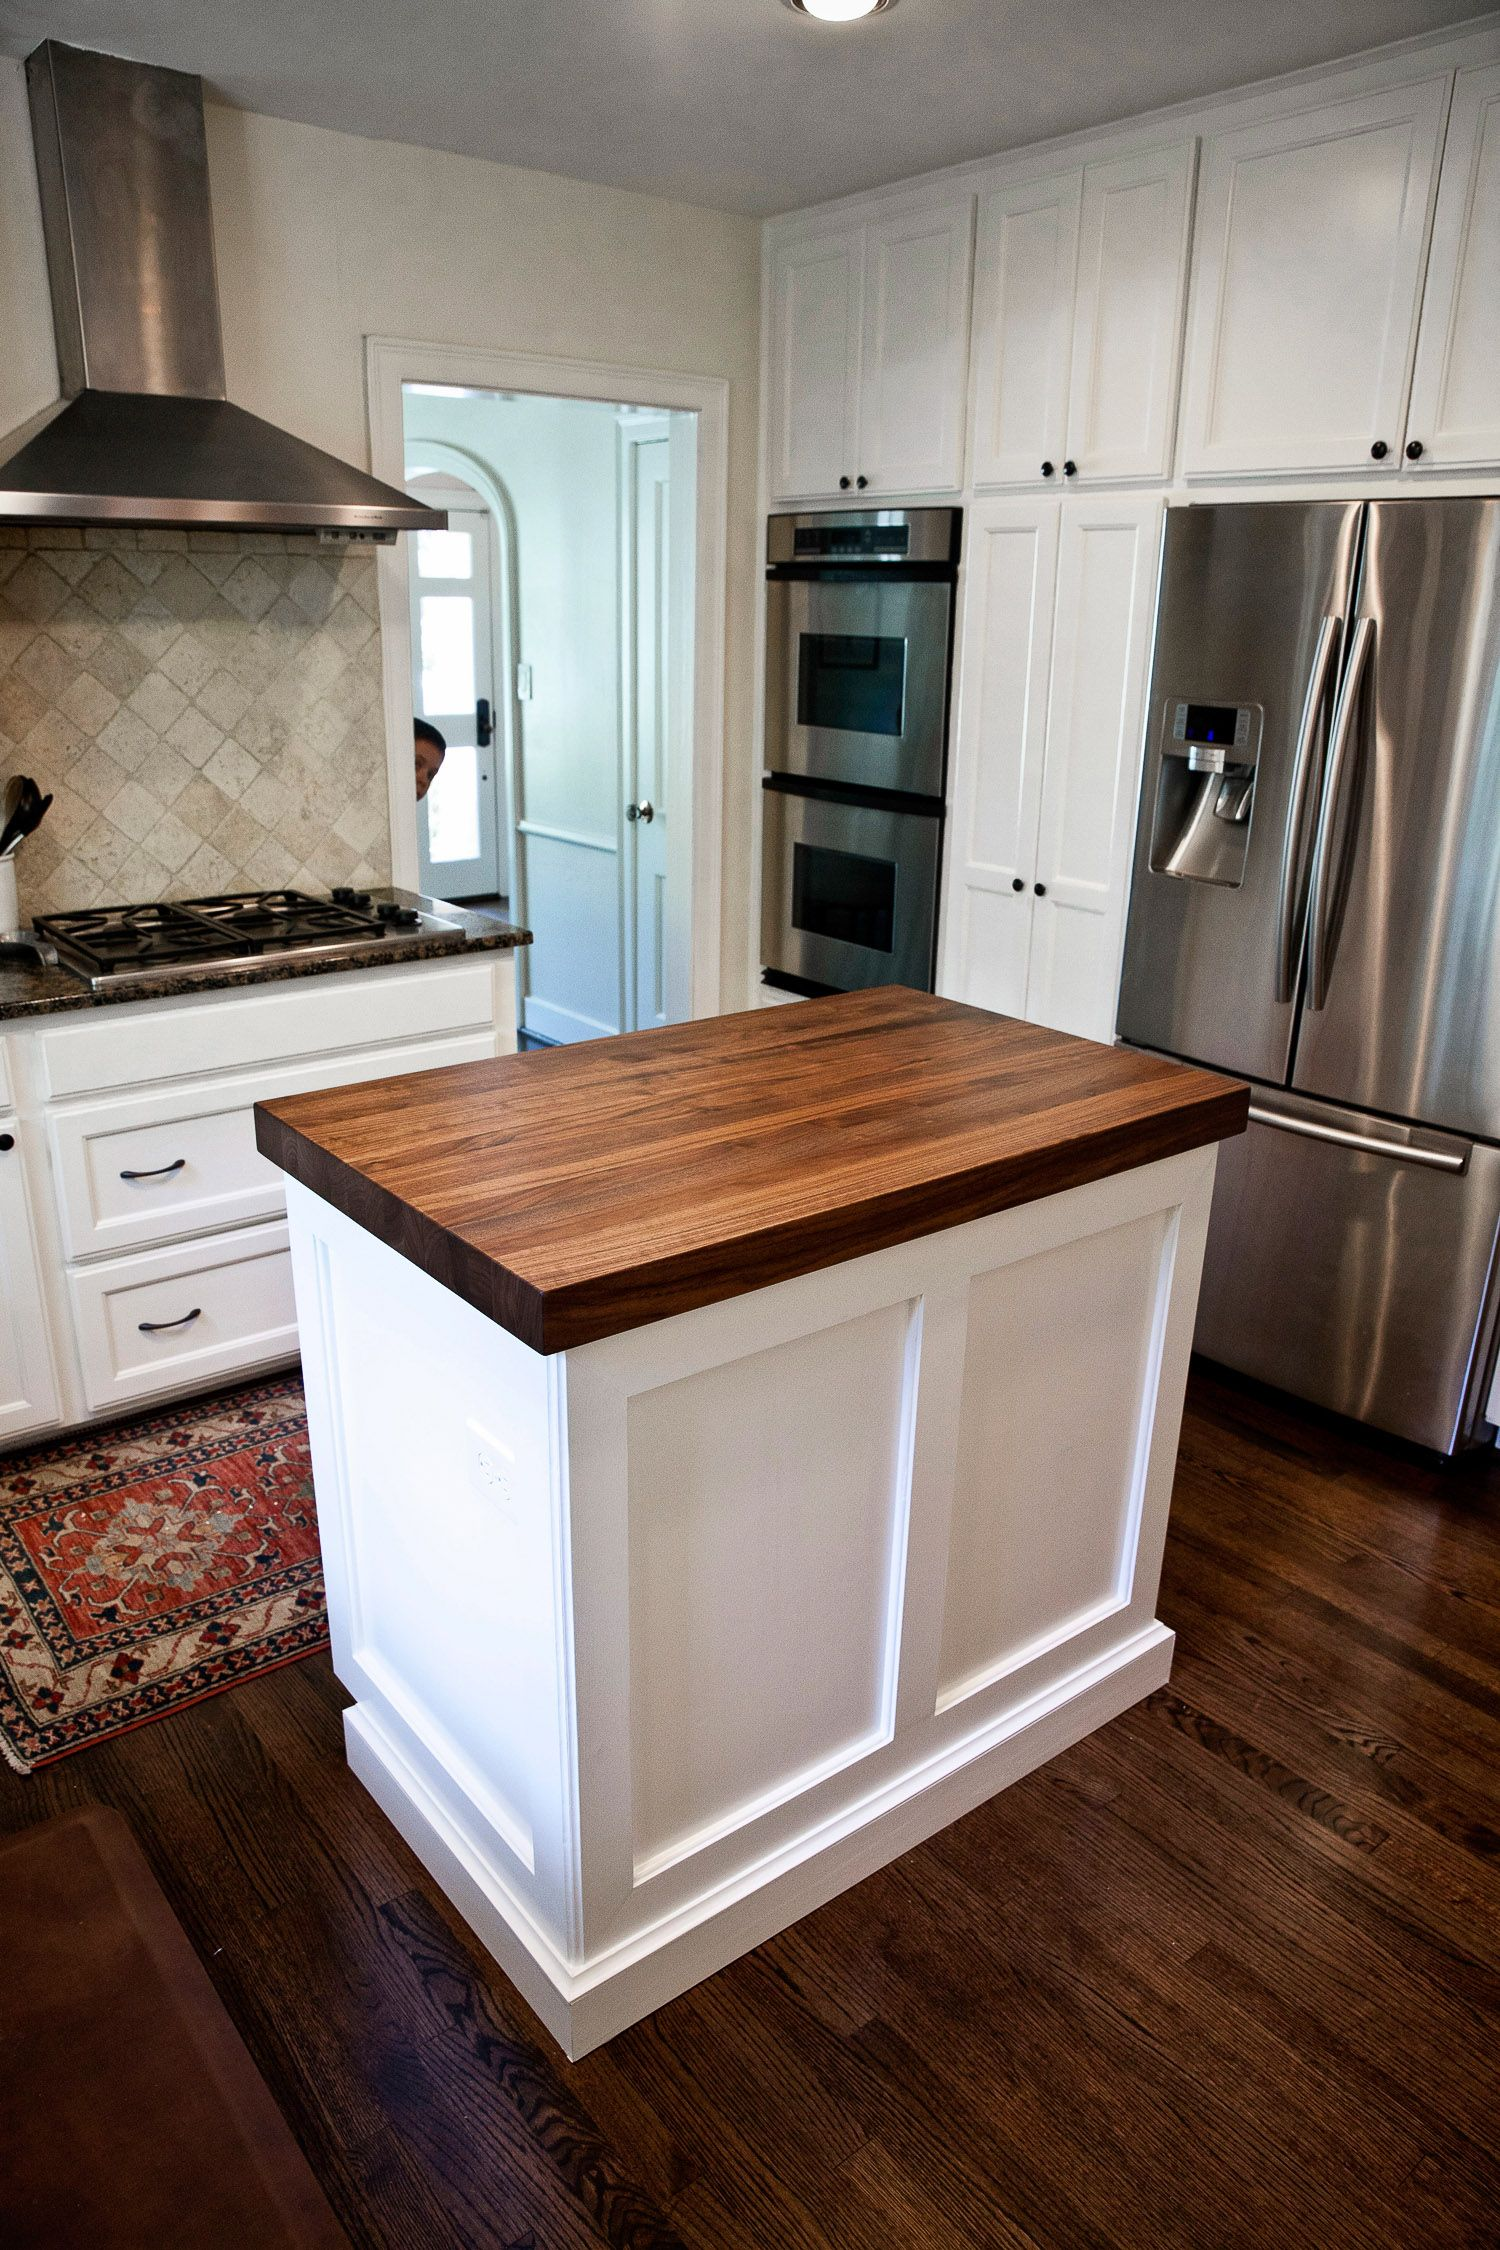 Kitchen Countertops Dimensions 19 Unique Kitchen Island Ideas For Every Space And Budget